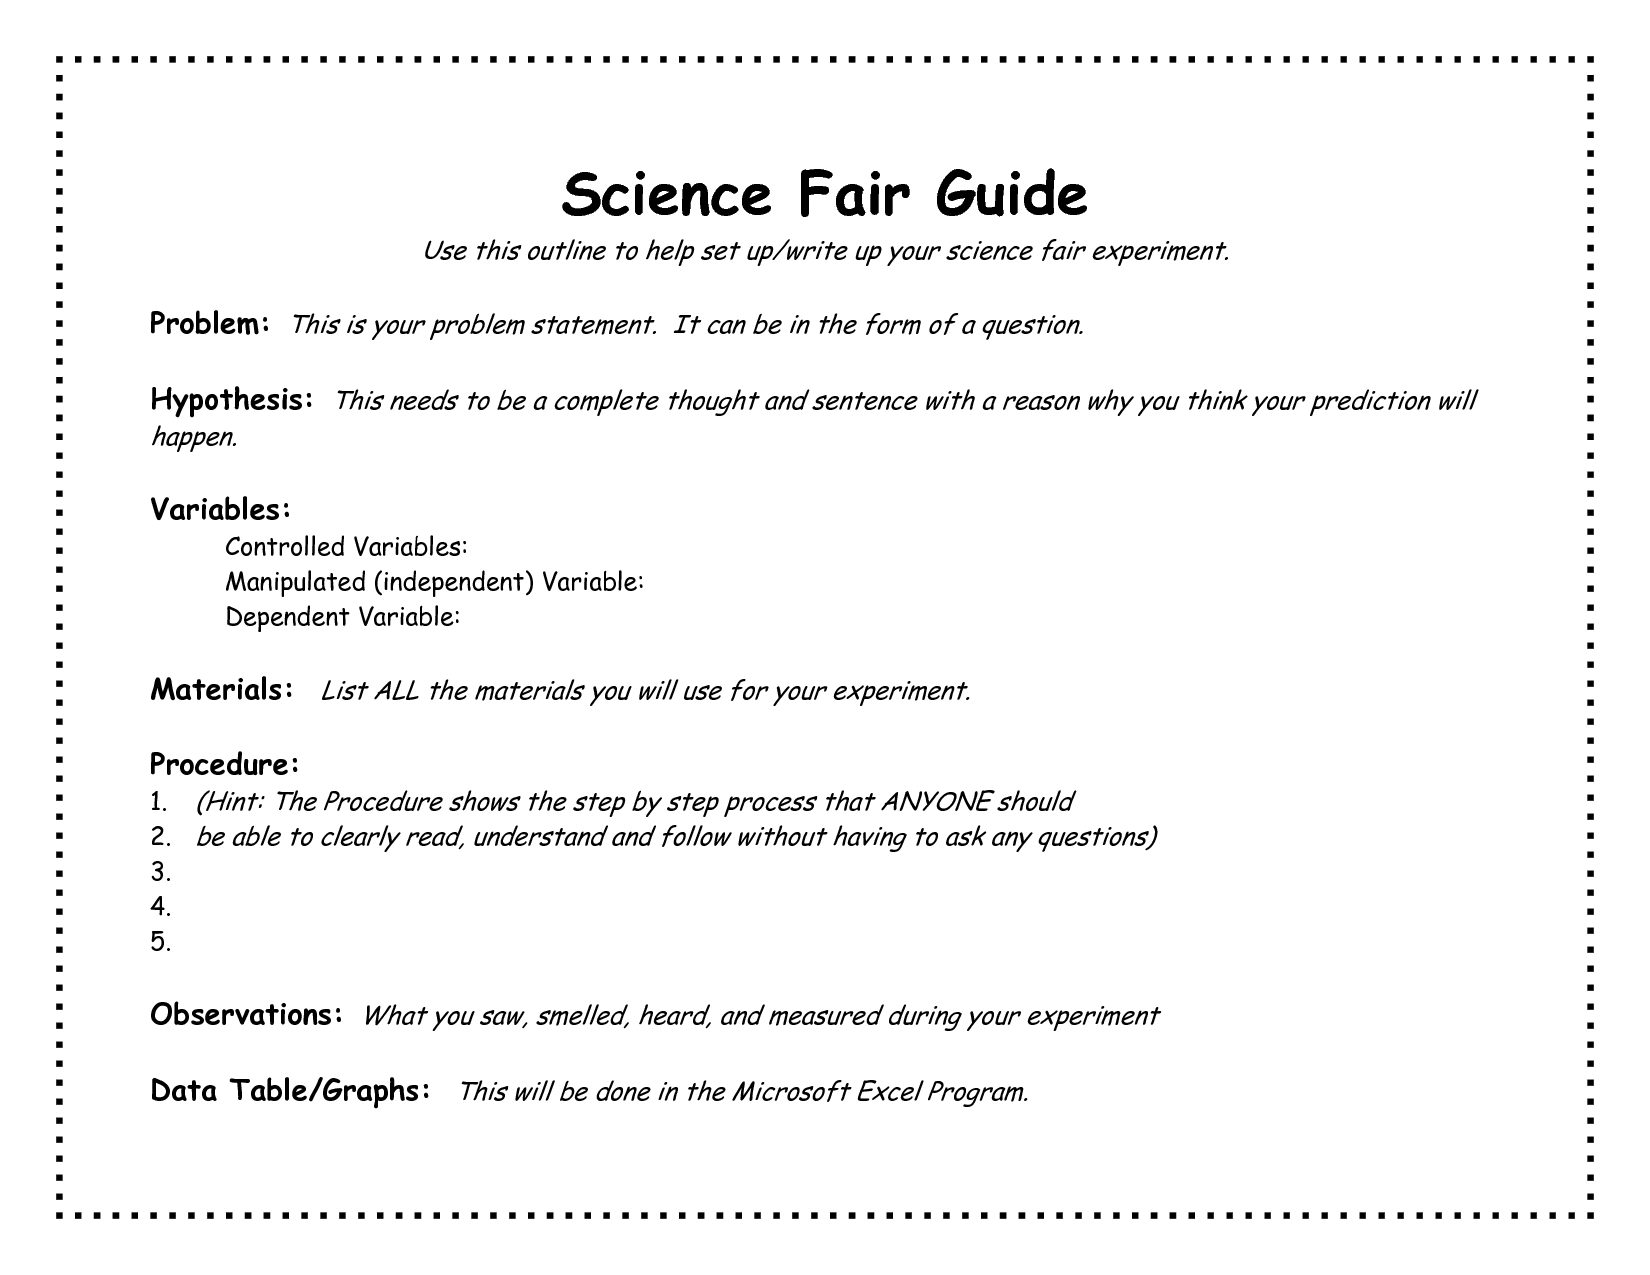 Sample Research Paper For Science Fair Project